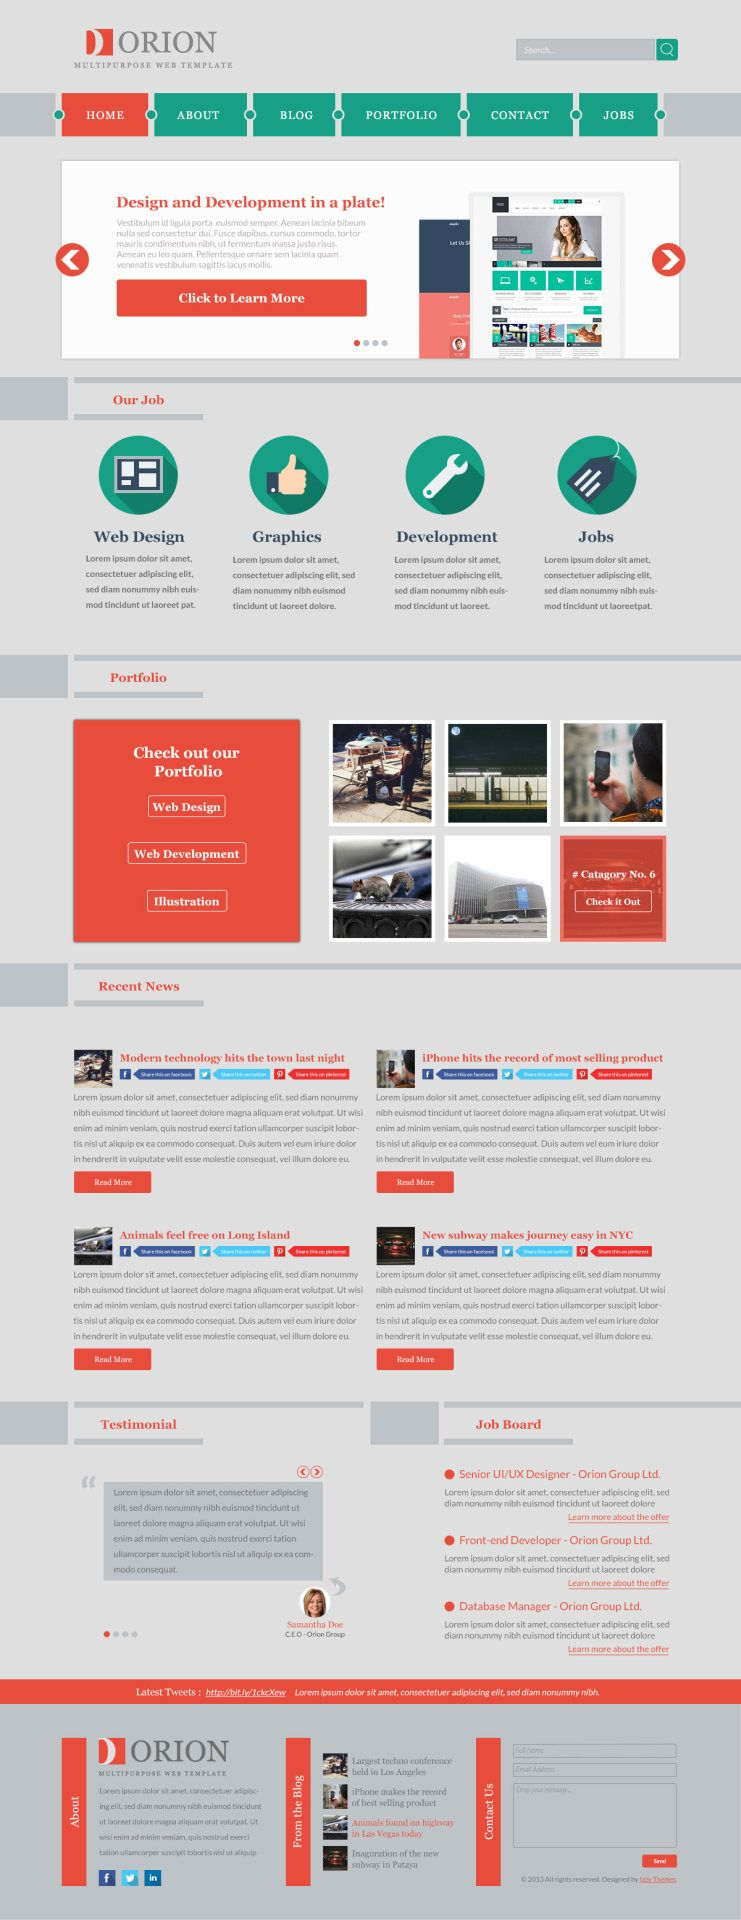 We Can Turn A Beautiful Template Into An Active Website Orion Free Psd Template Web Design Web Design Marketing Web Design Tools